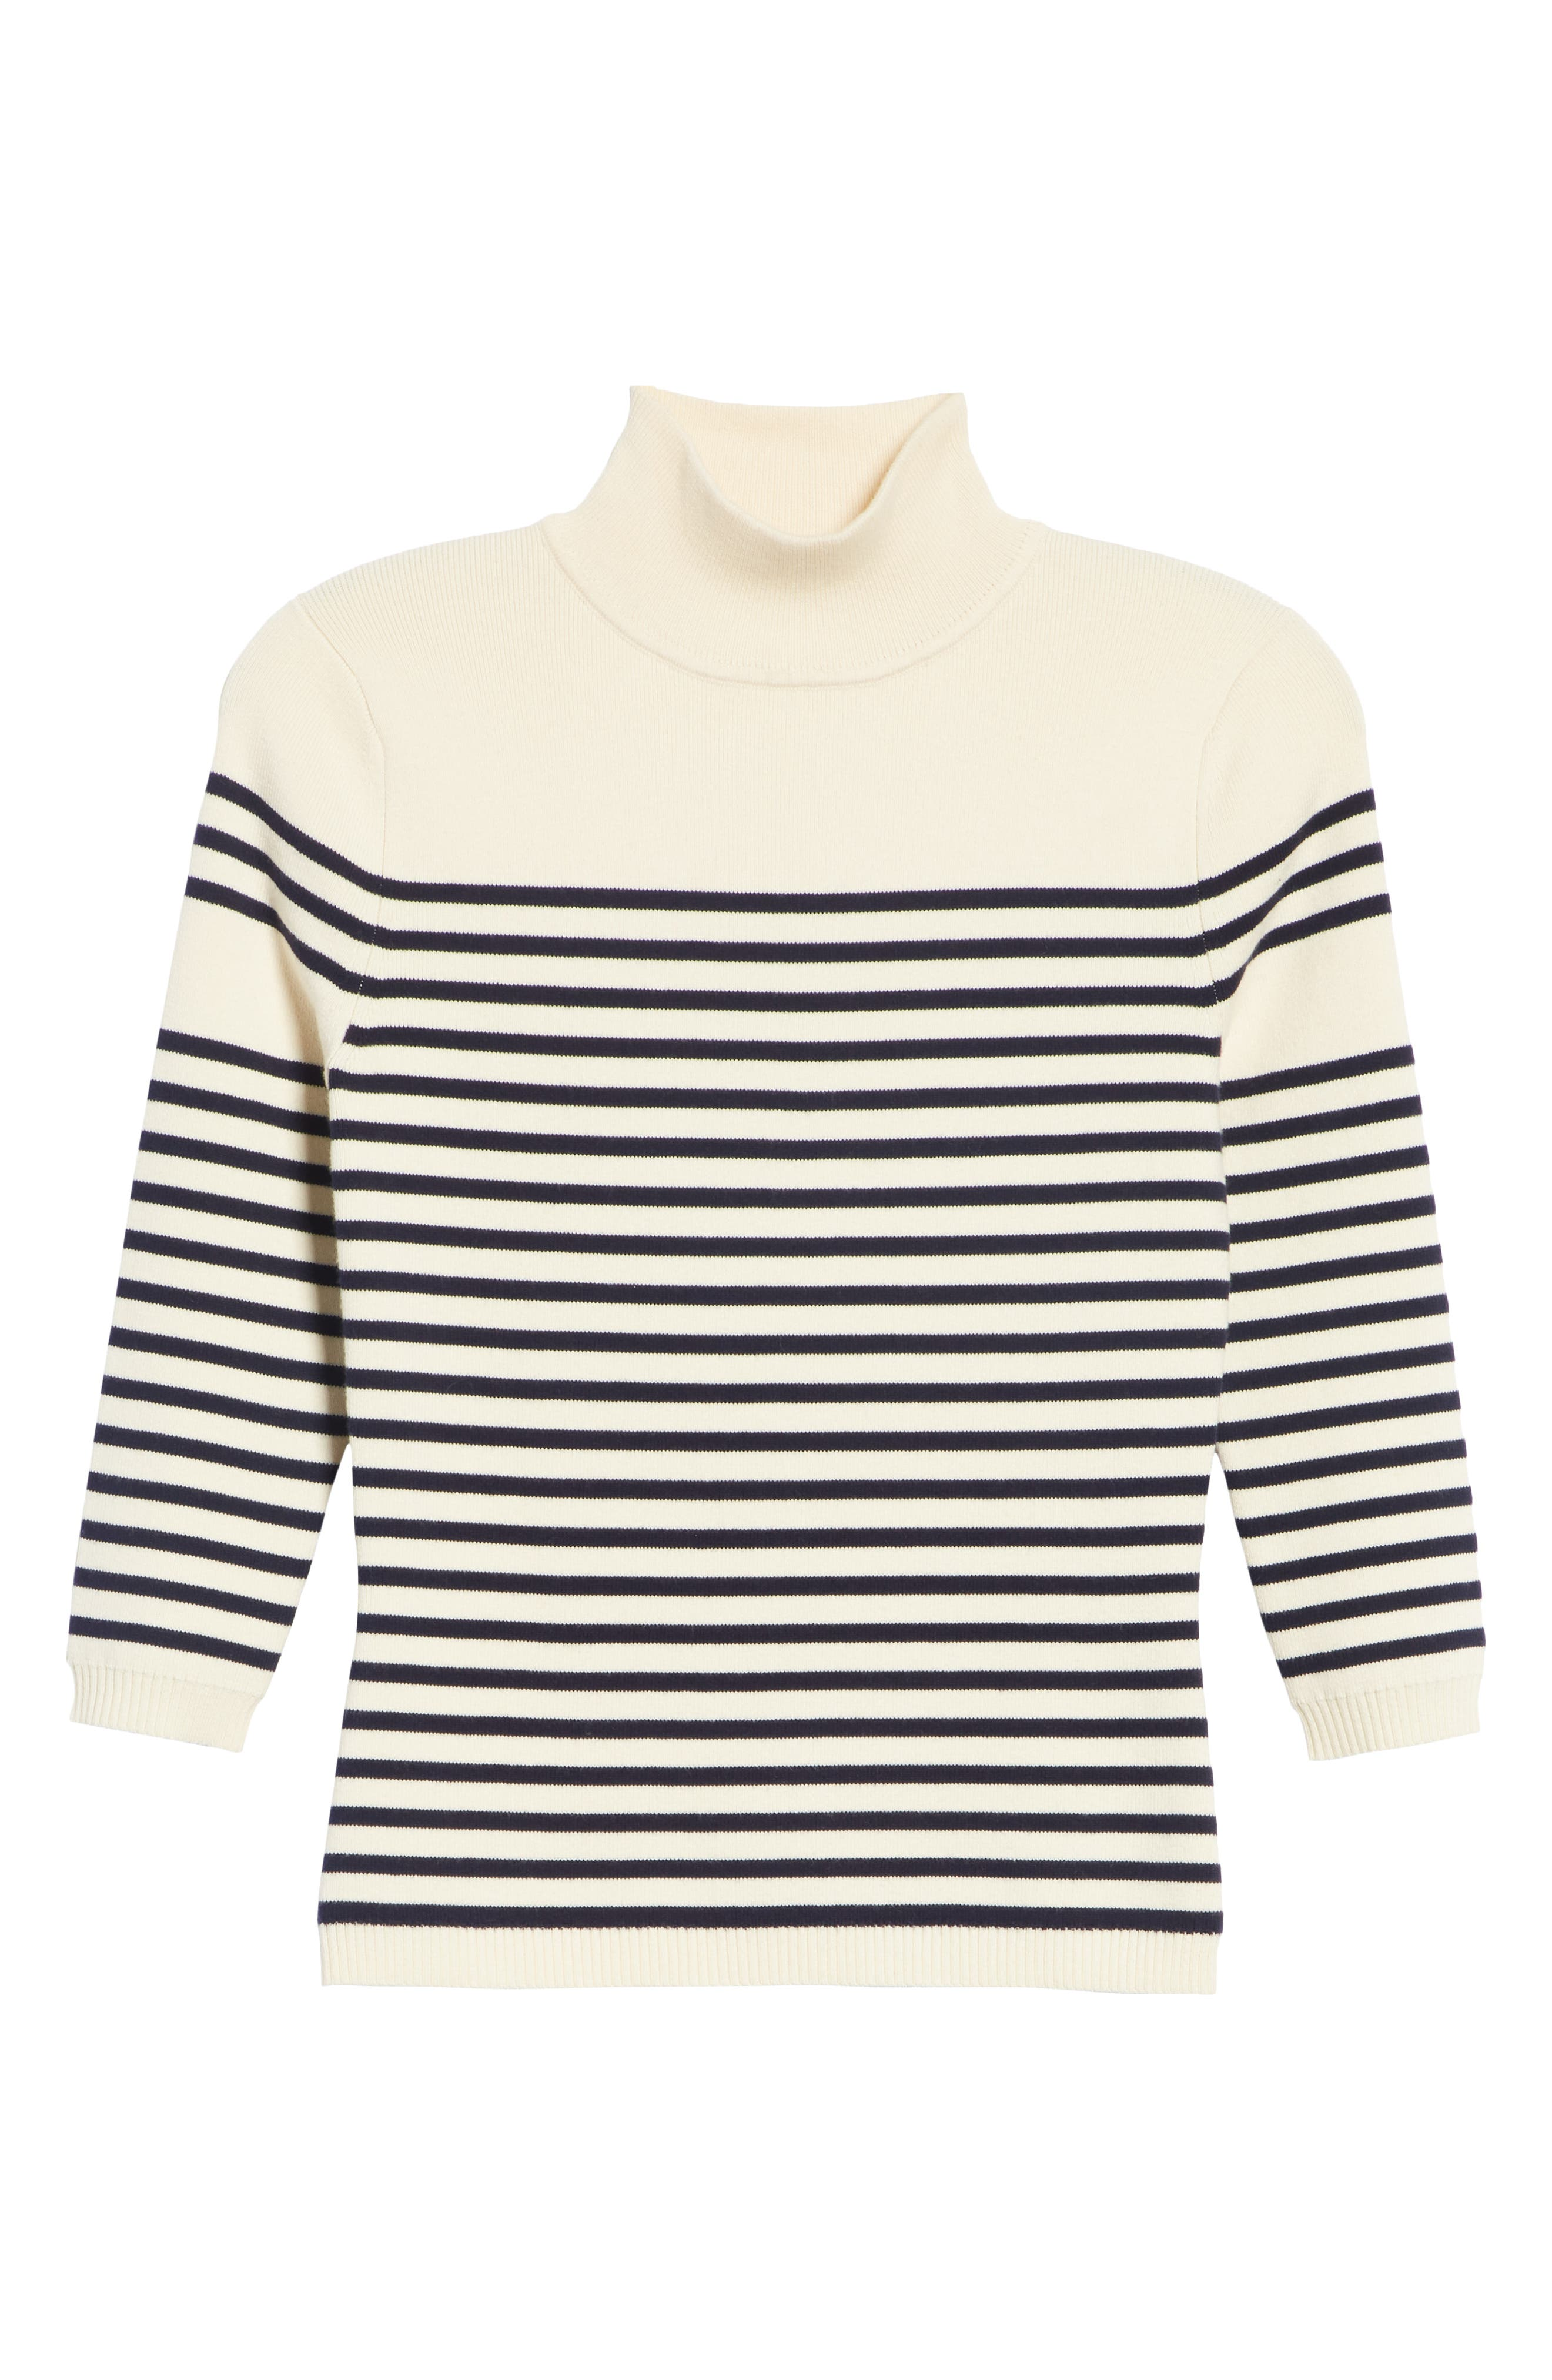 Classique Stripe Sweater,                             Alternate thumbnail 6, color,                             CREAM/ NAVY STRIPES